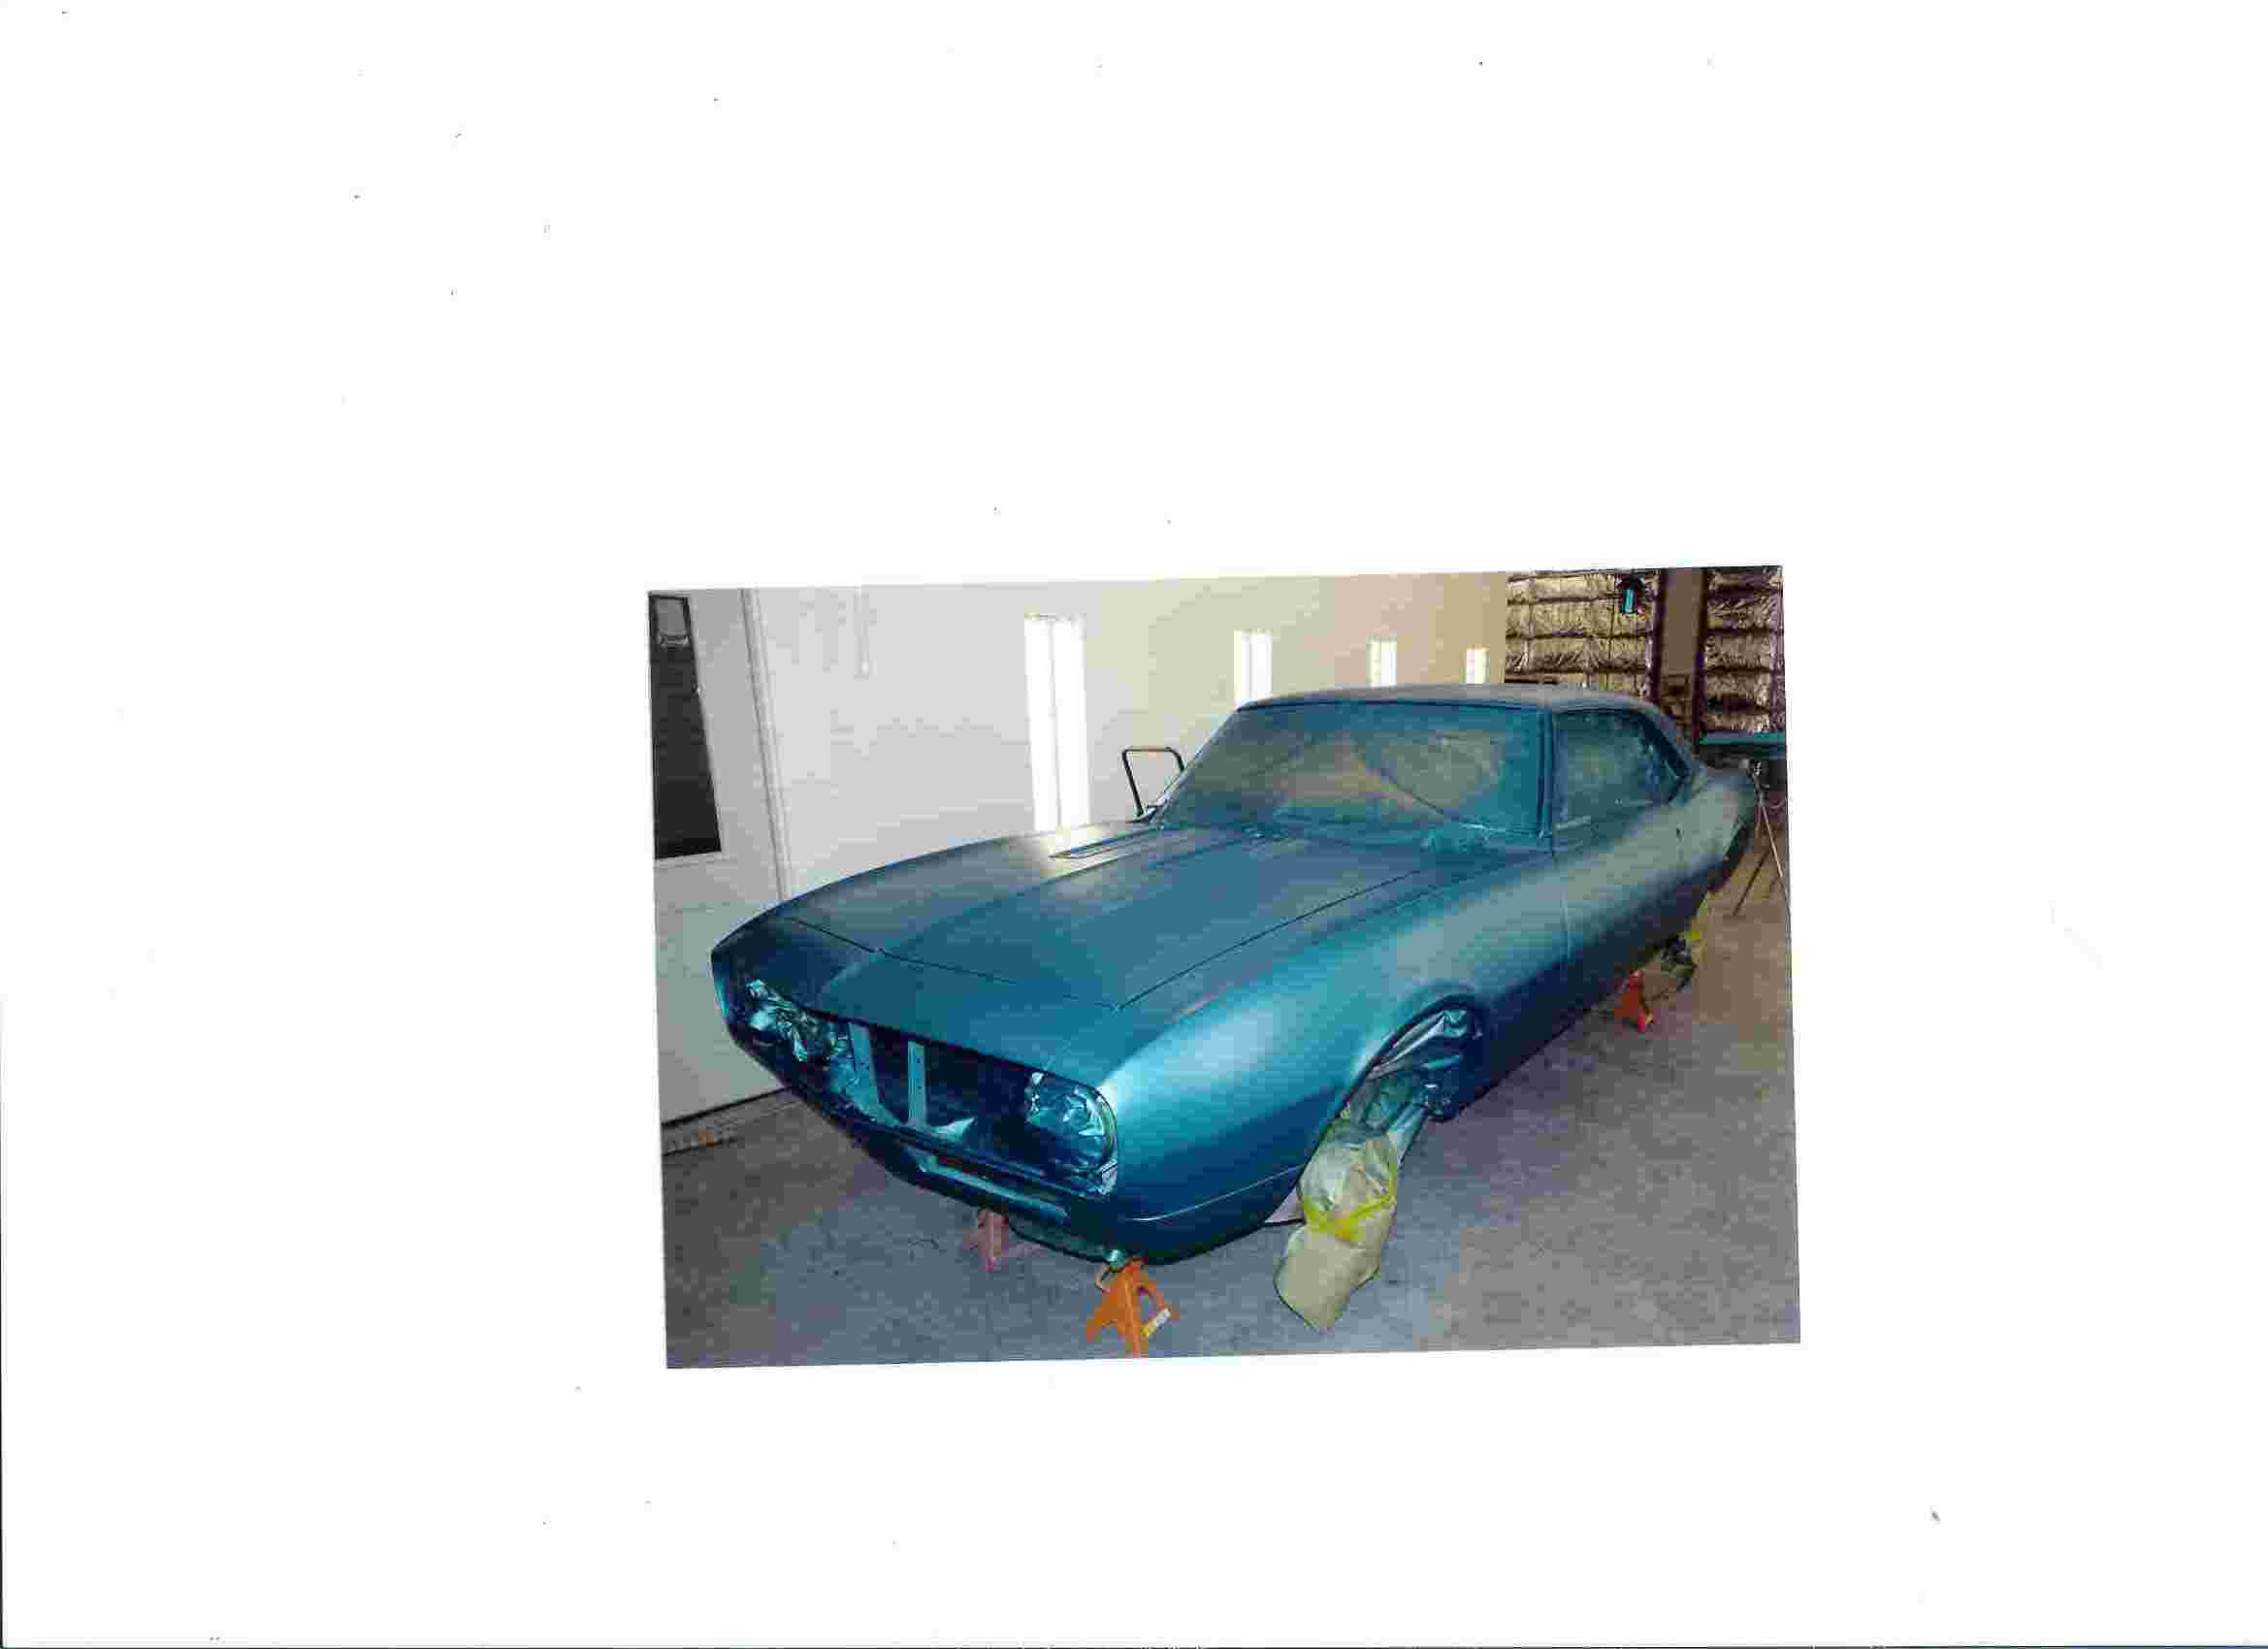 Click image for larger version  Name:car.jpg Views:81 Size:78.0 KB ID:3411